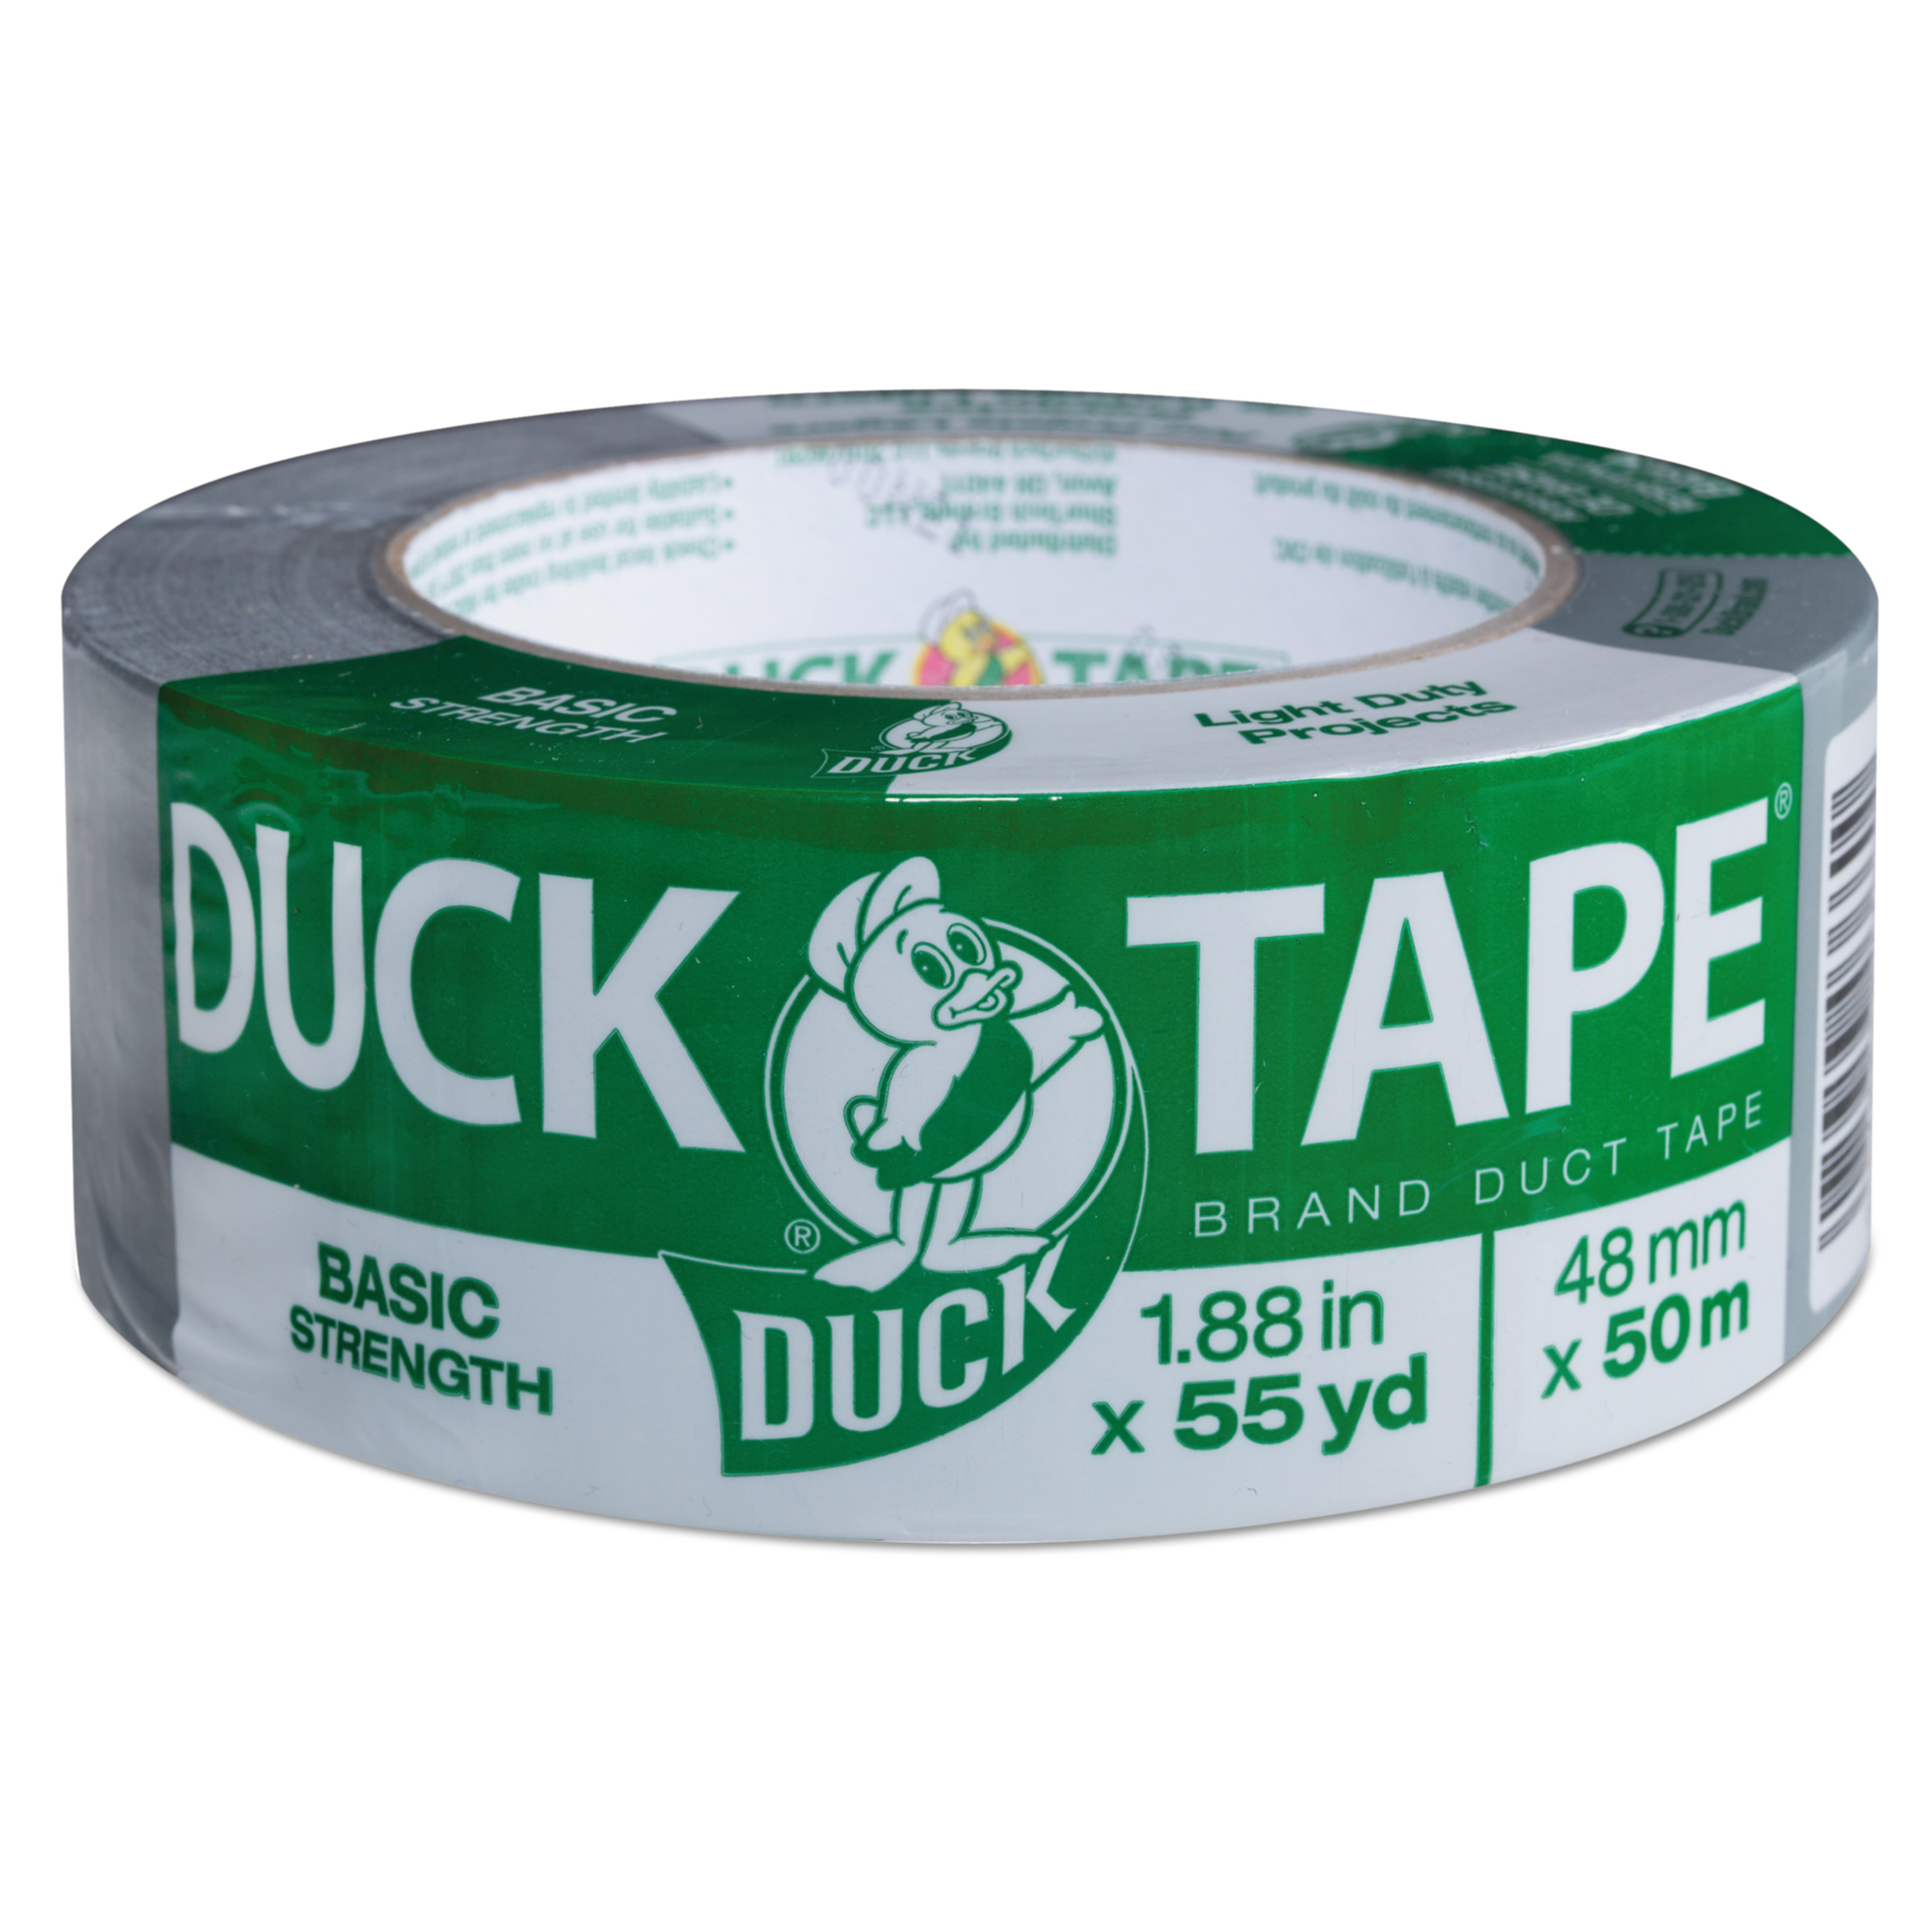 "Duck Tape Basic Strength Duct Tape, Silver, 1.88"" x 55 yards"